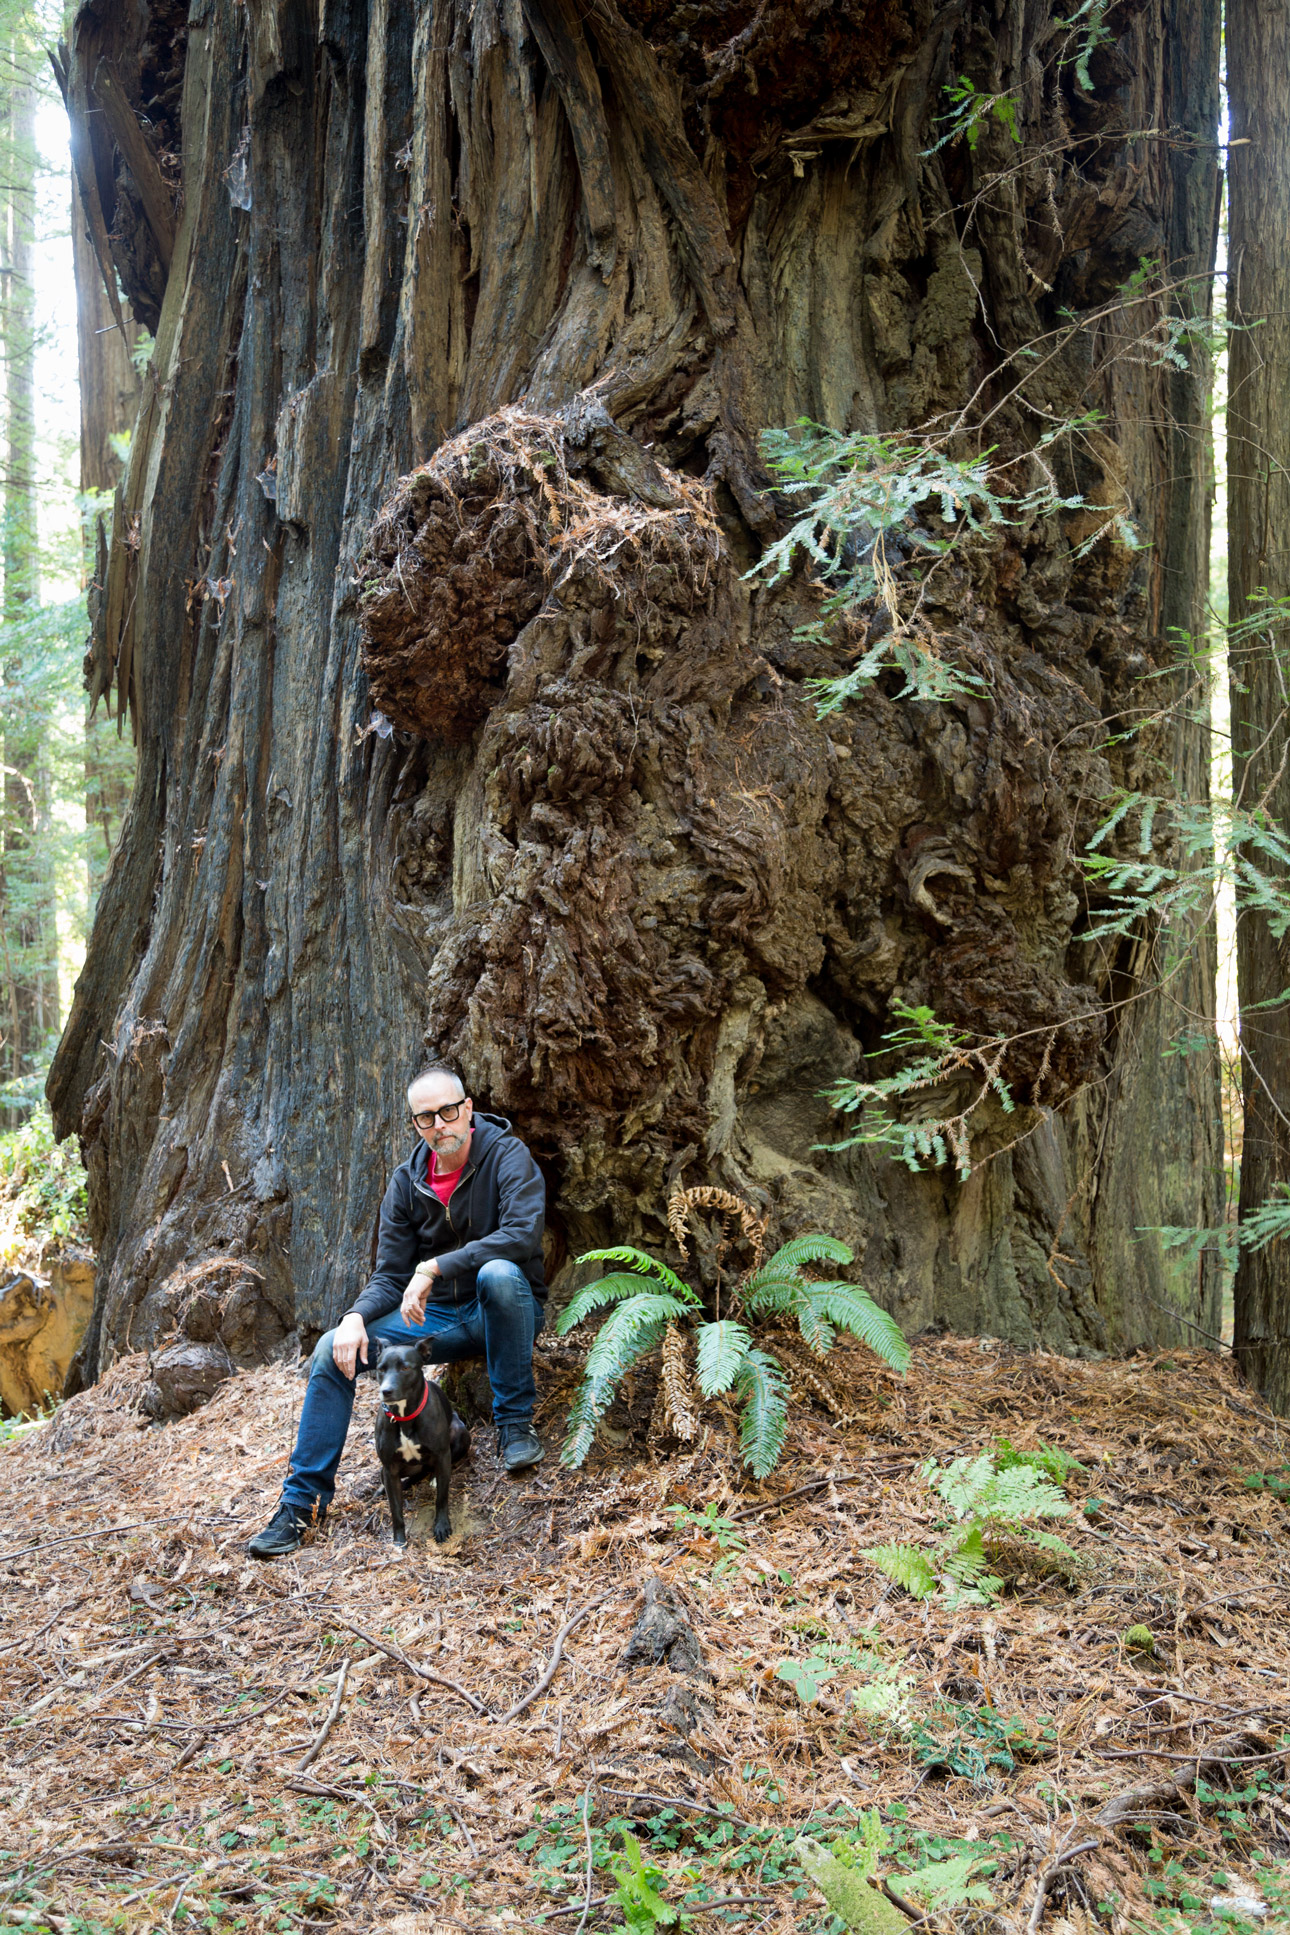 Man and dog with redwood tree